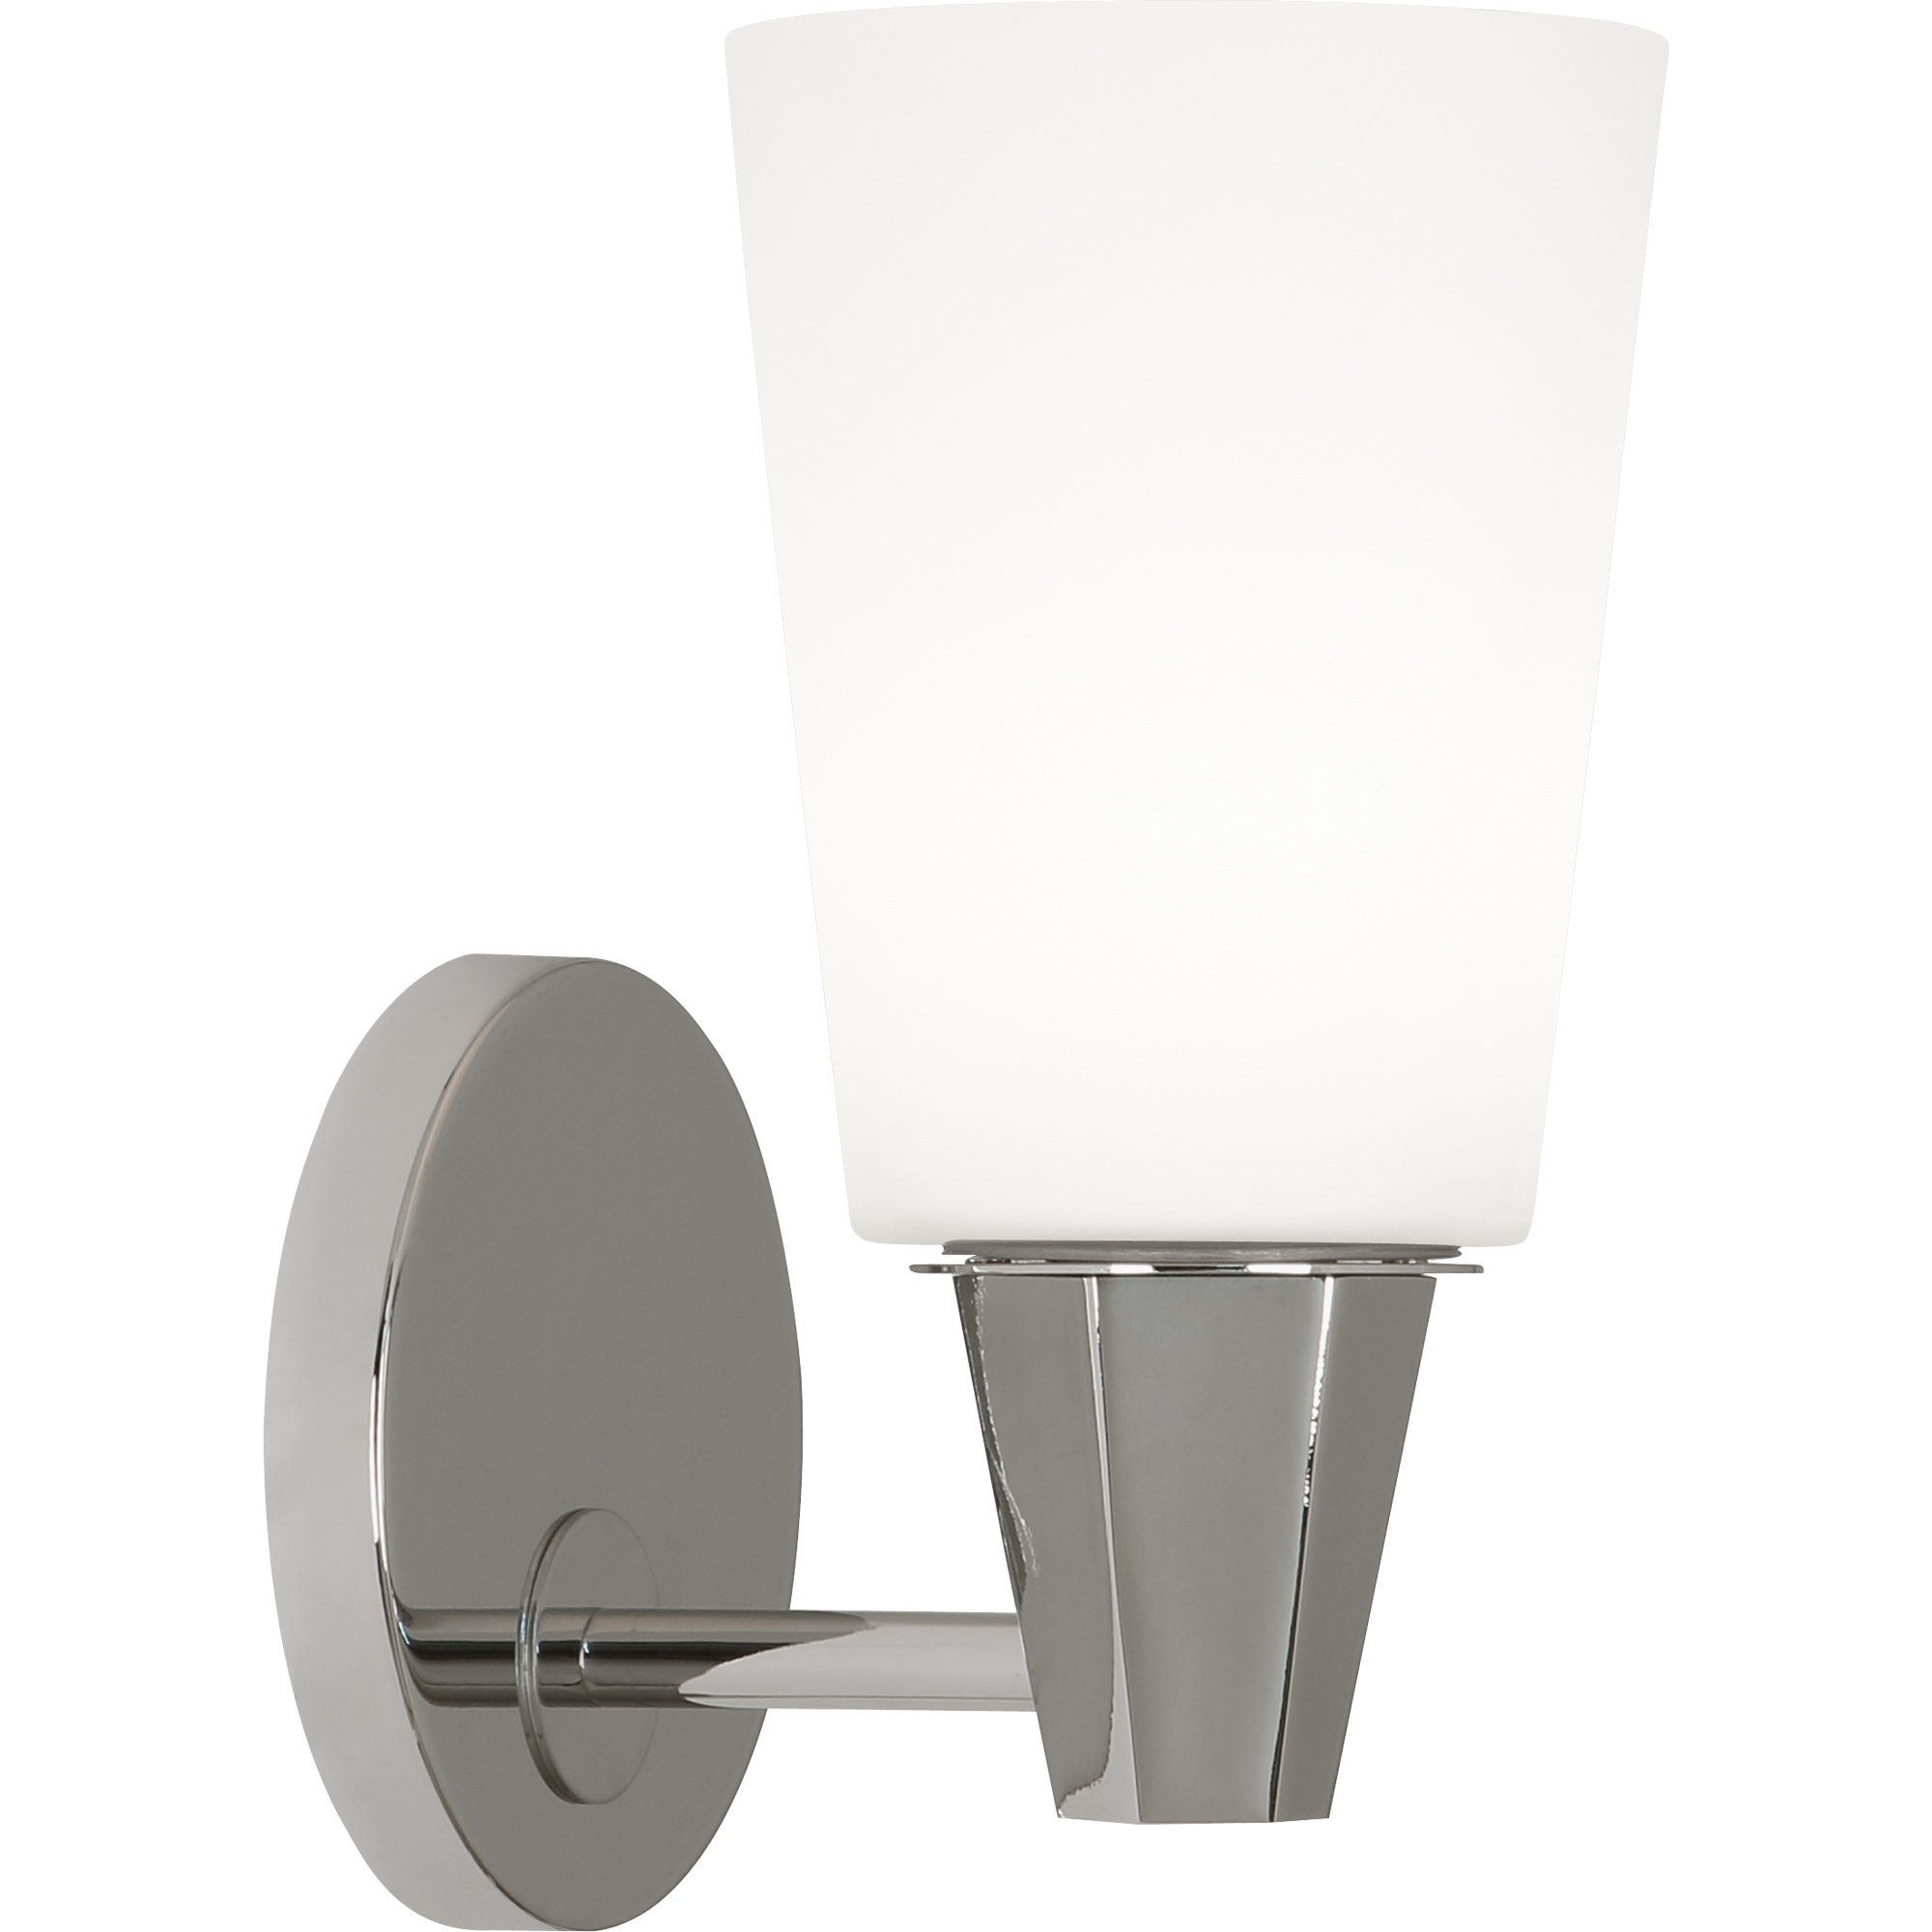 Wheatley Wall Sconce Style #C254F